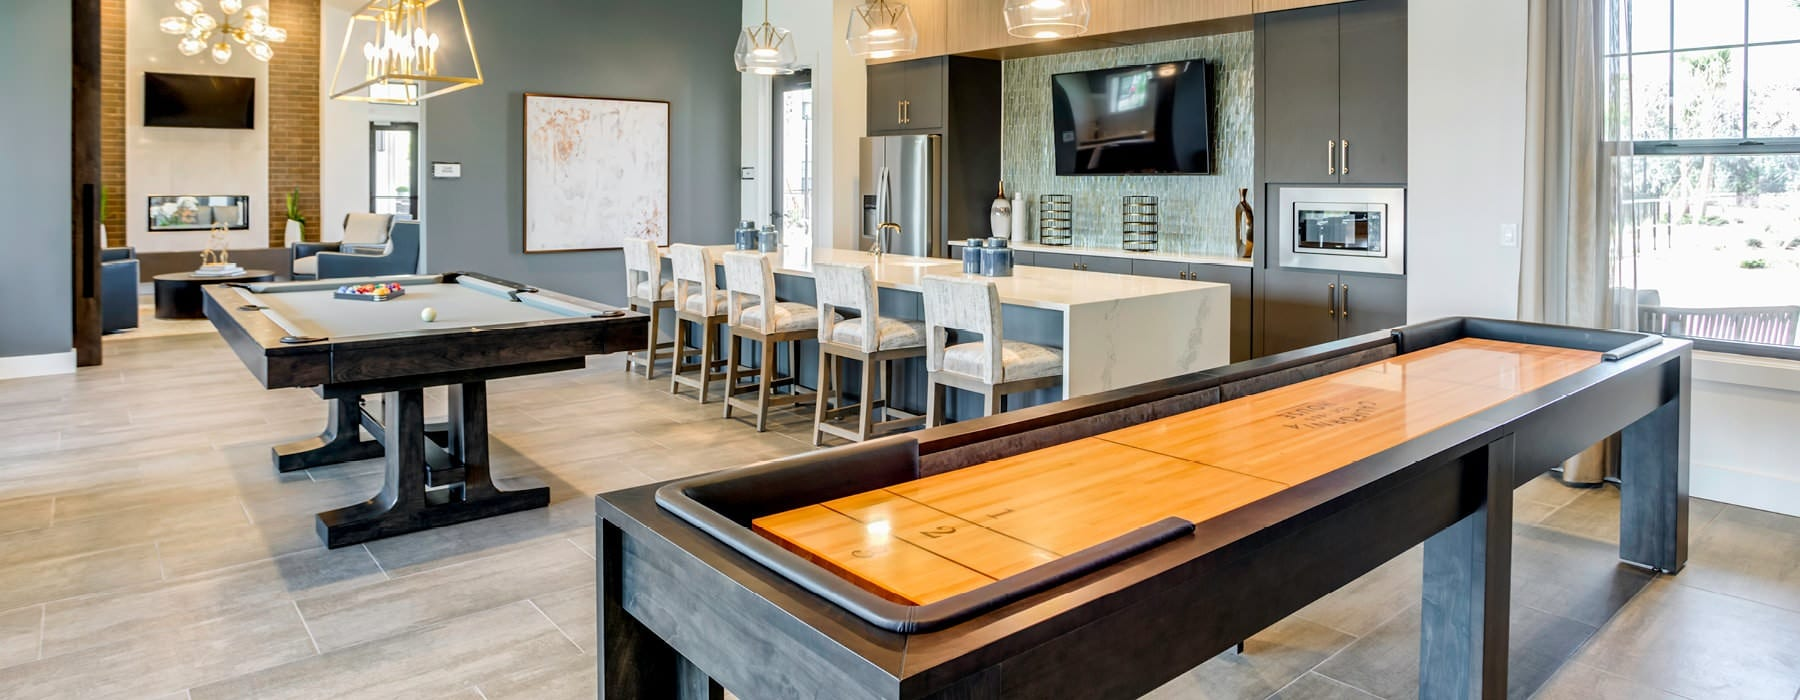 shuffle board and billiards tables in well lit resident lounge with kitchen